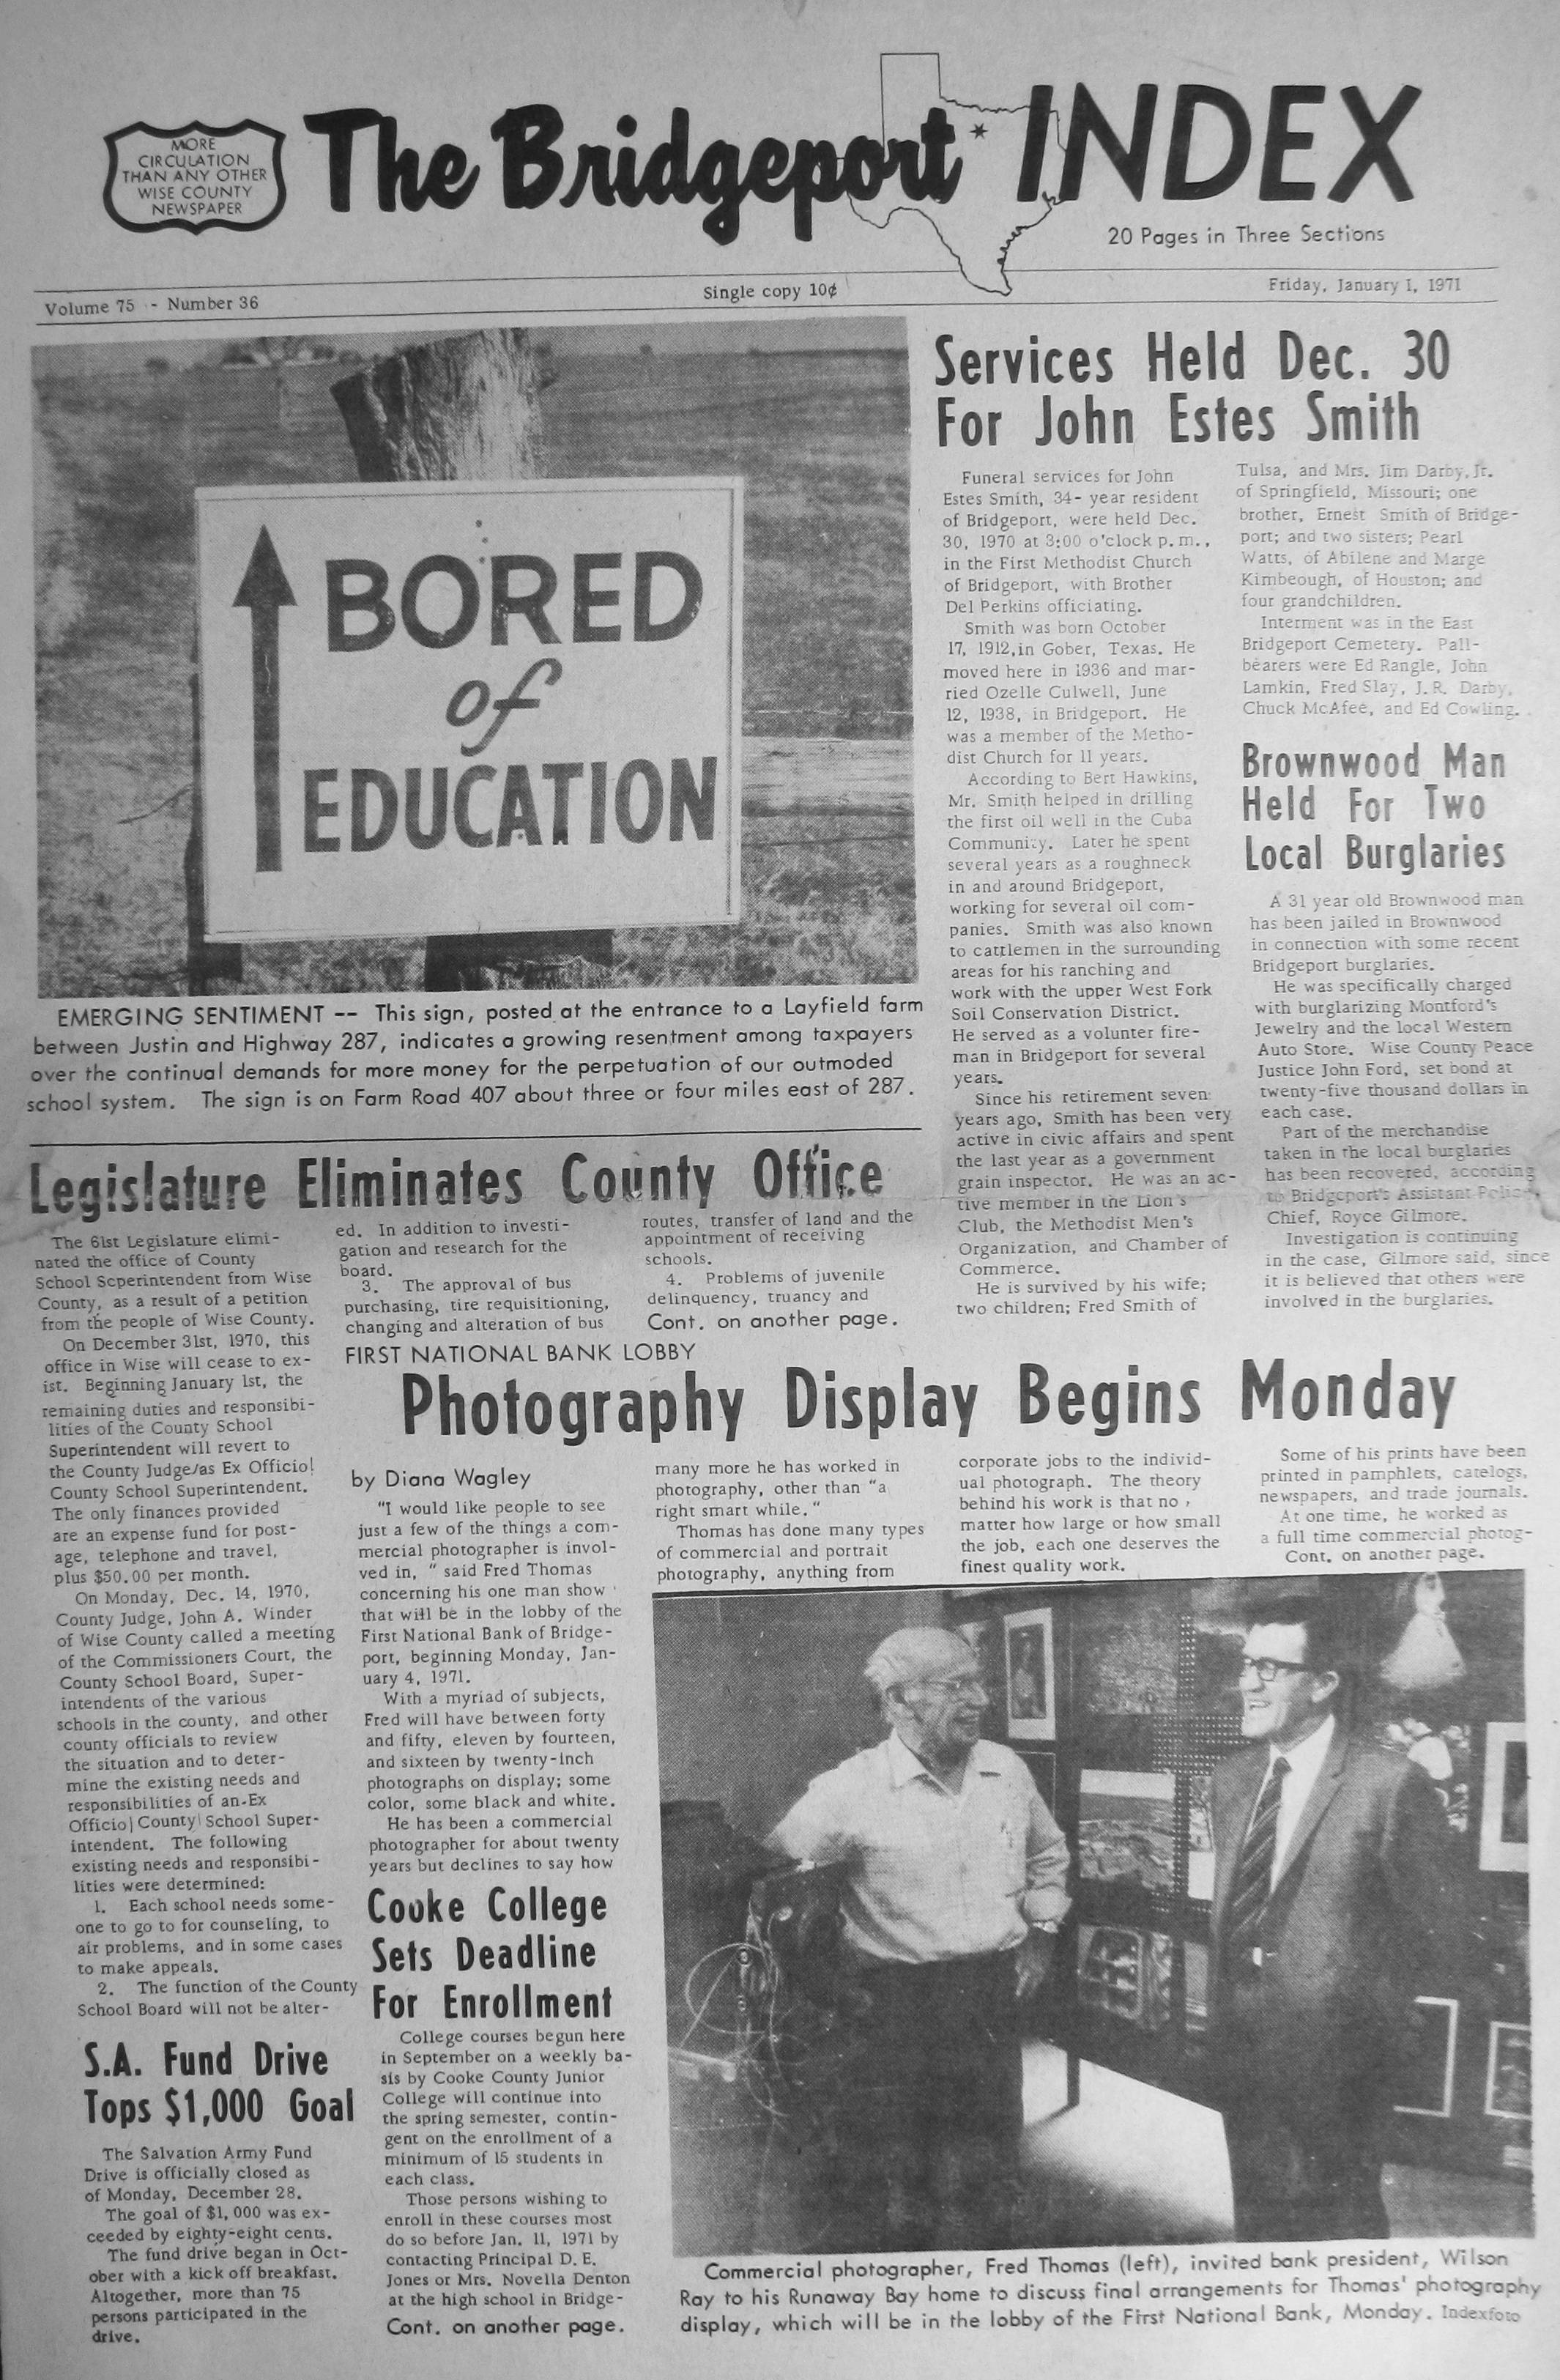 Images of all whole pages from the 1971 Bridgeport Index